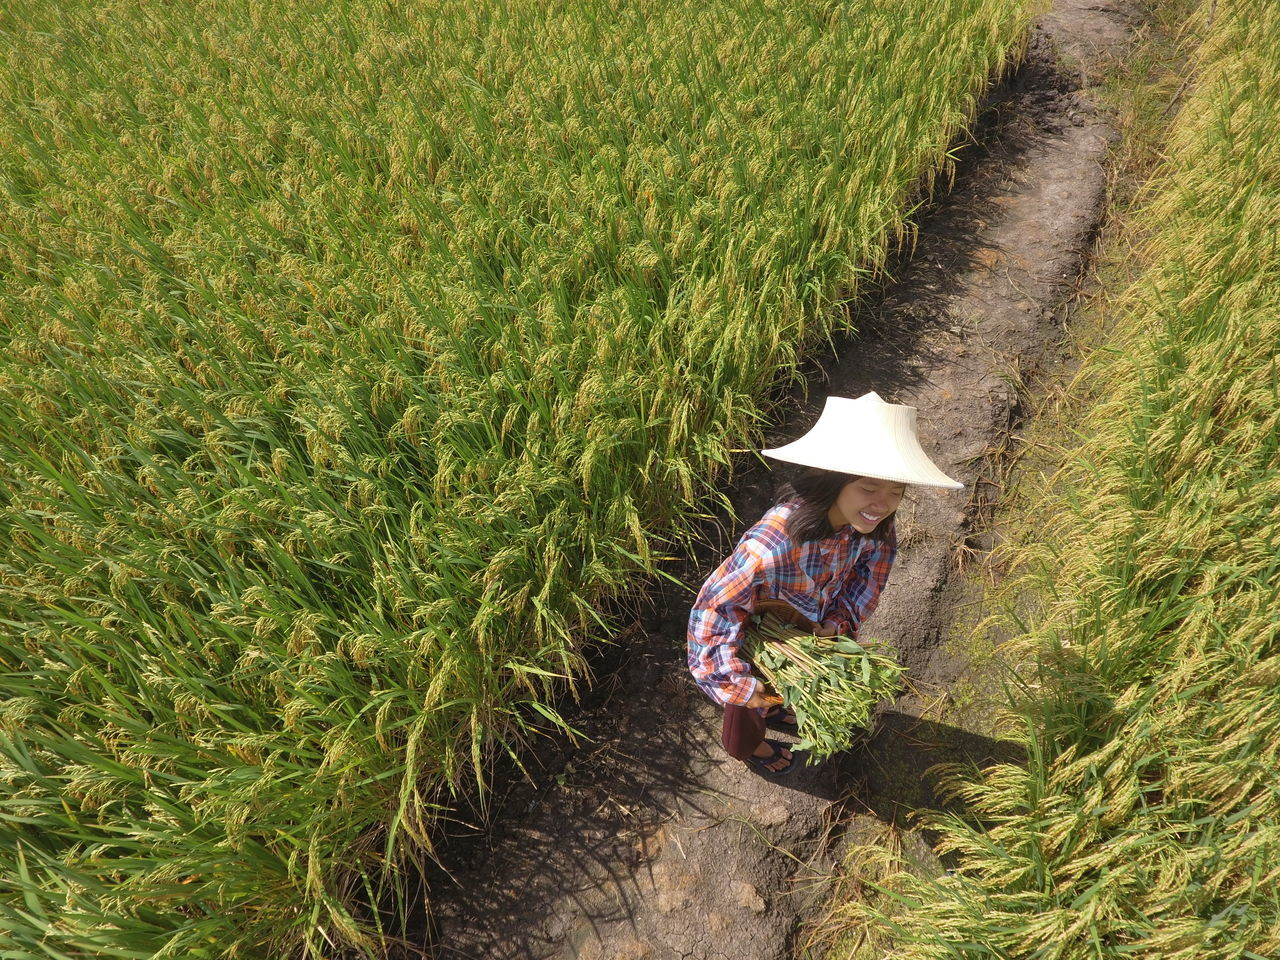 Suphan Buri, Thailand - June 30, 2016: Thailand, farmers are happy because from drought. The water in rice cultivation June 30, 2016 in Suphanburi, Thailand. Bloom Farmer Nature Summer Agriculture Agriculture Farm Agriculture Land Agriculture Park Agriculture Way Asian  Thailand